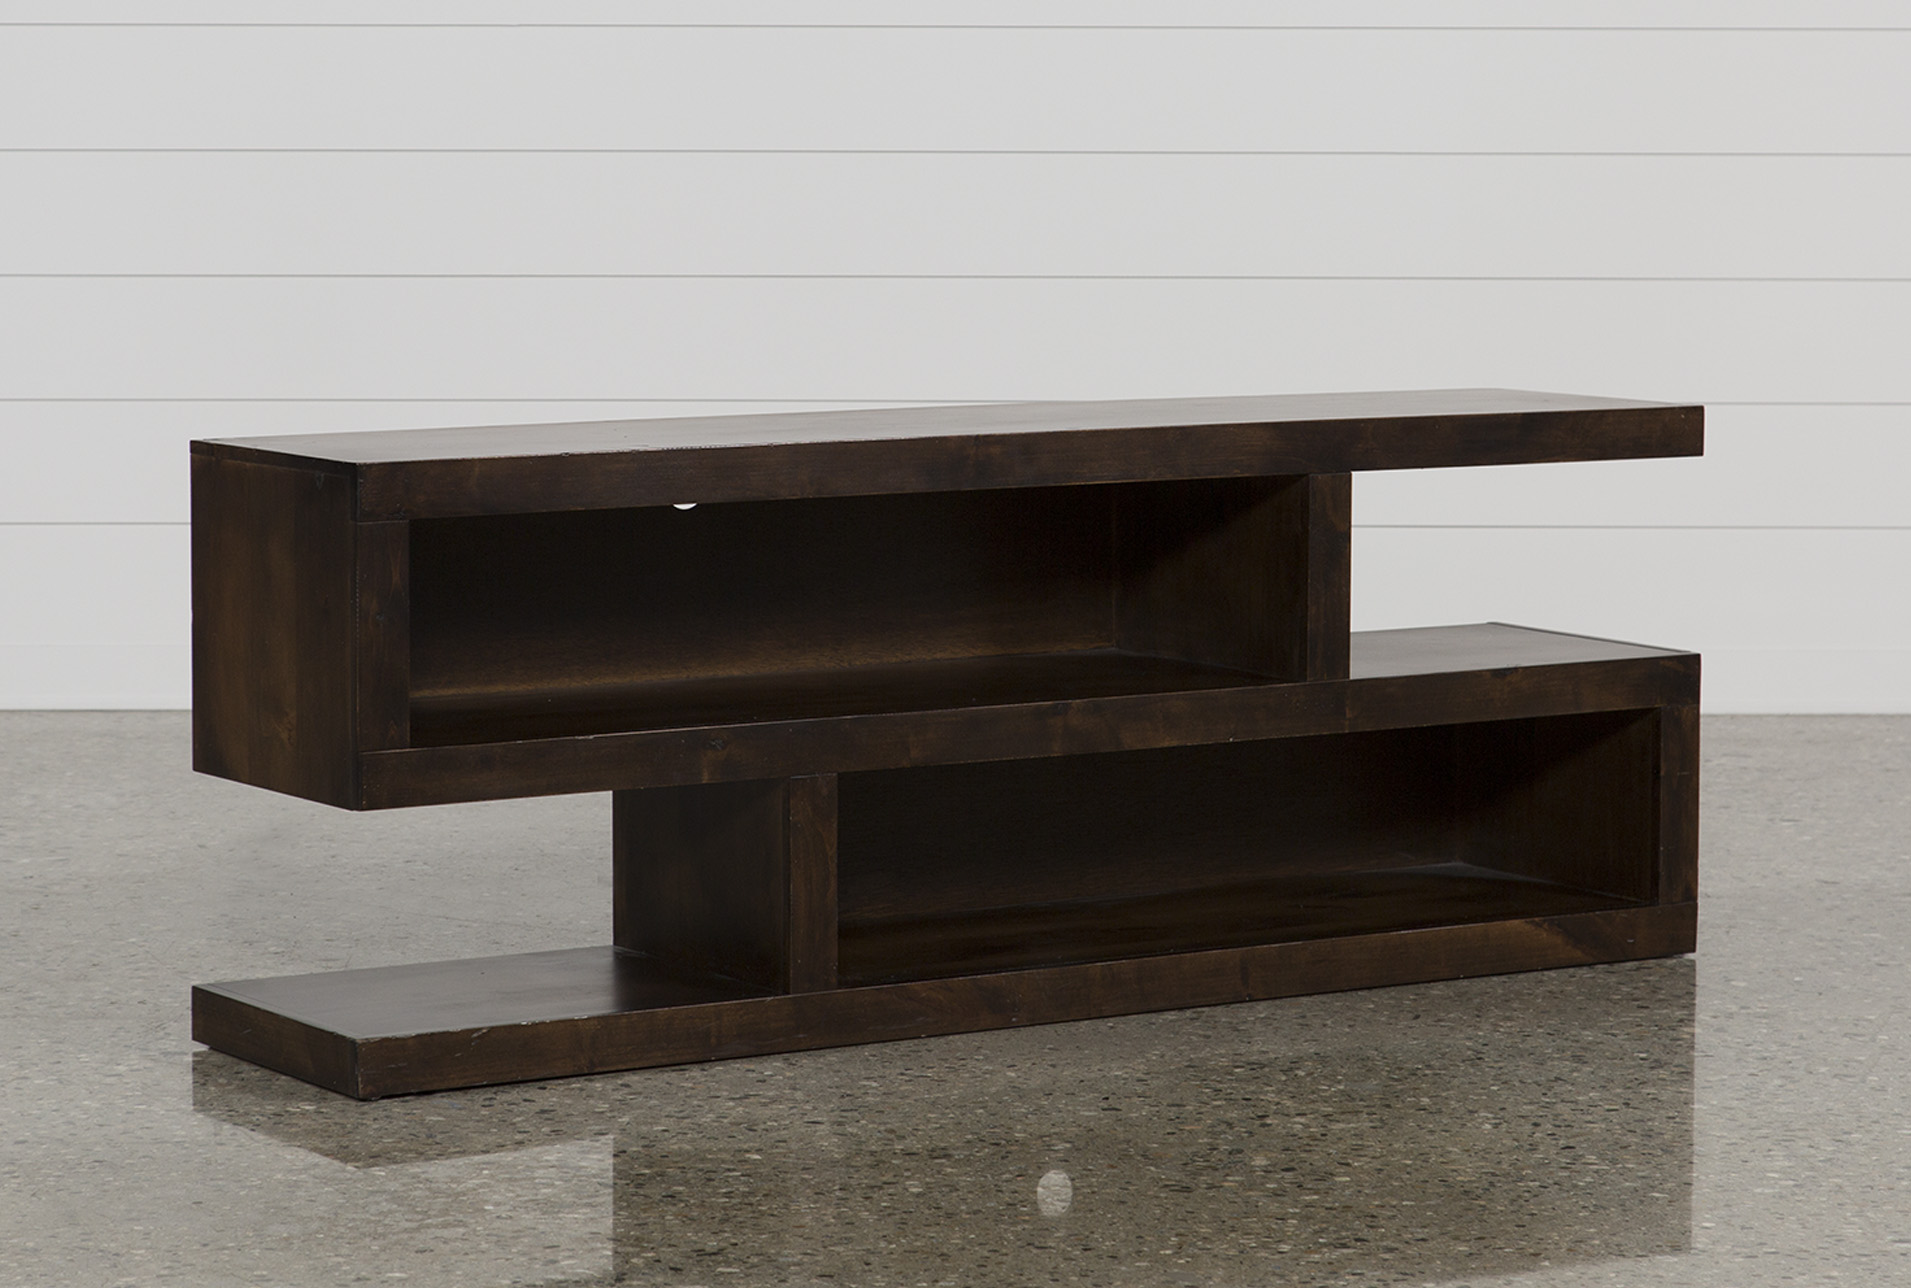 Dark Wood Tv Credenza : Luxury tv cabinet find great options for your space shop luxedecor